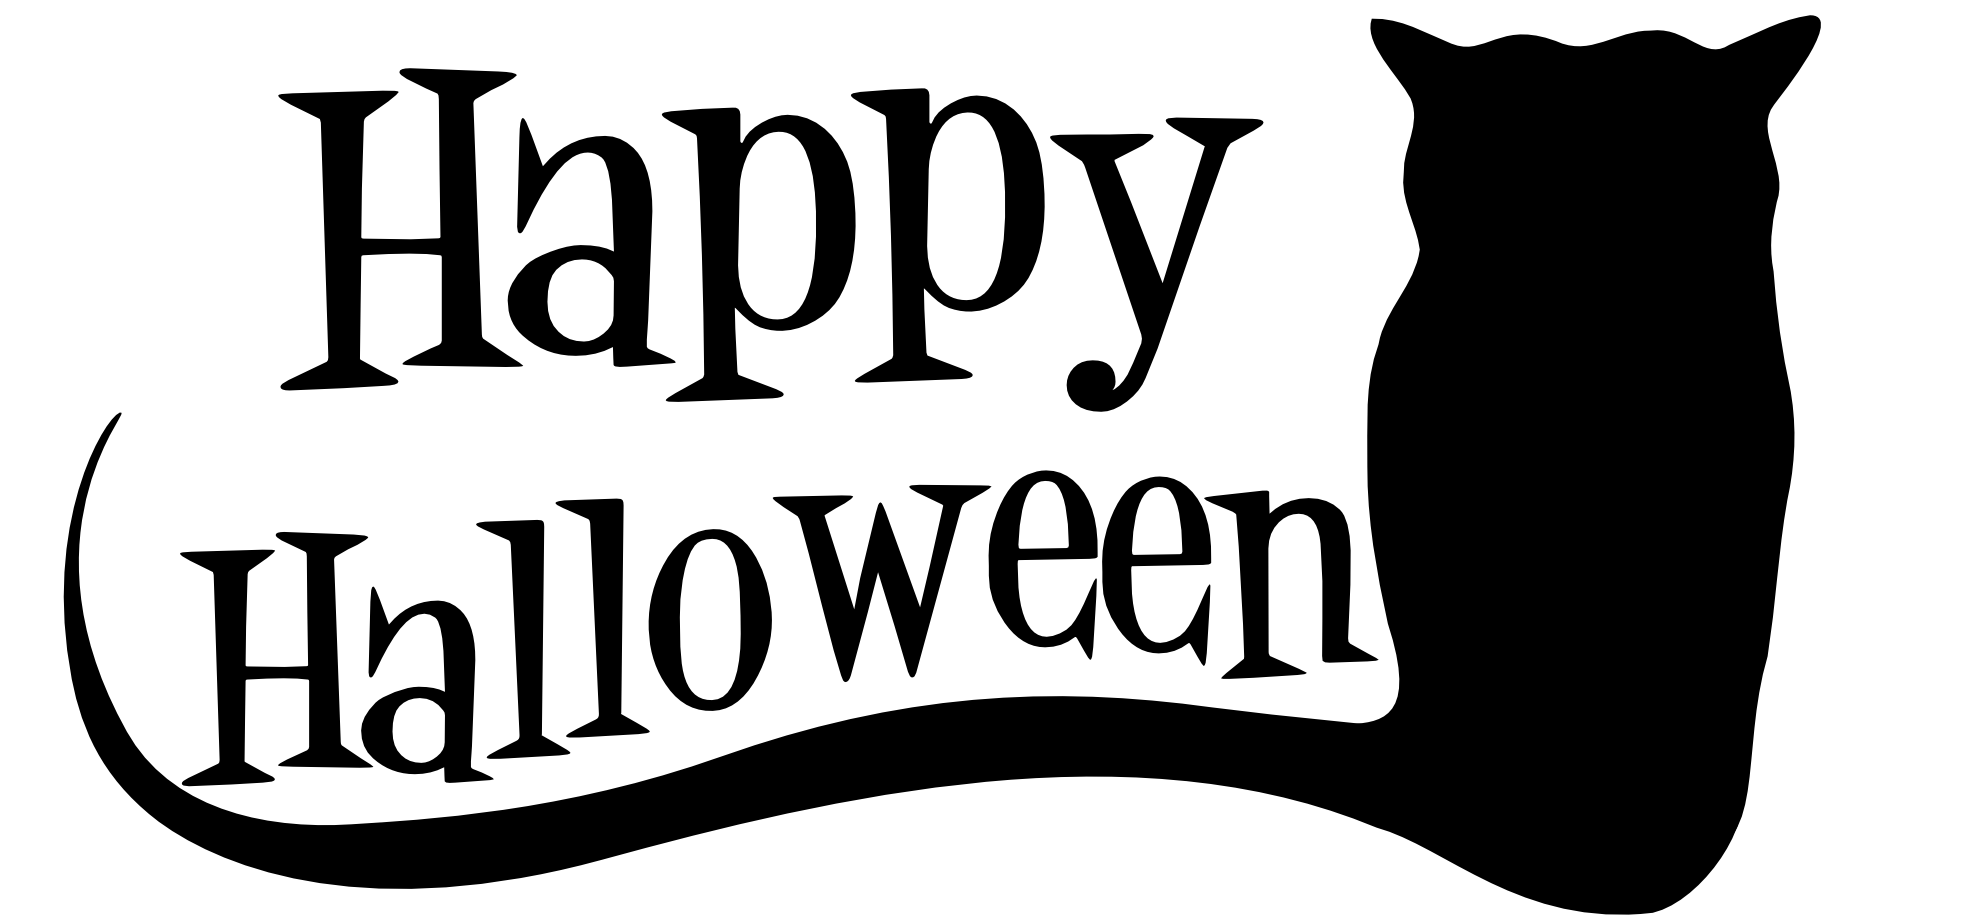 Happy halloween clipart black and white graphic clipartist.net » Clip Art » h Halloween SVG graphic